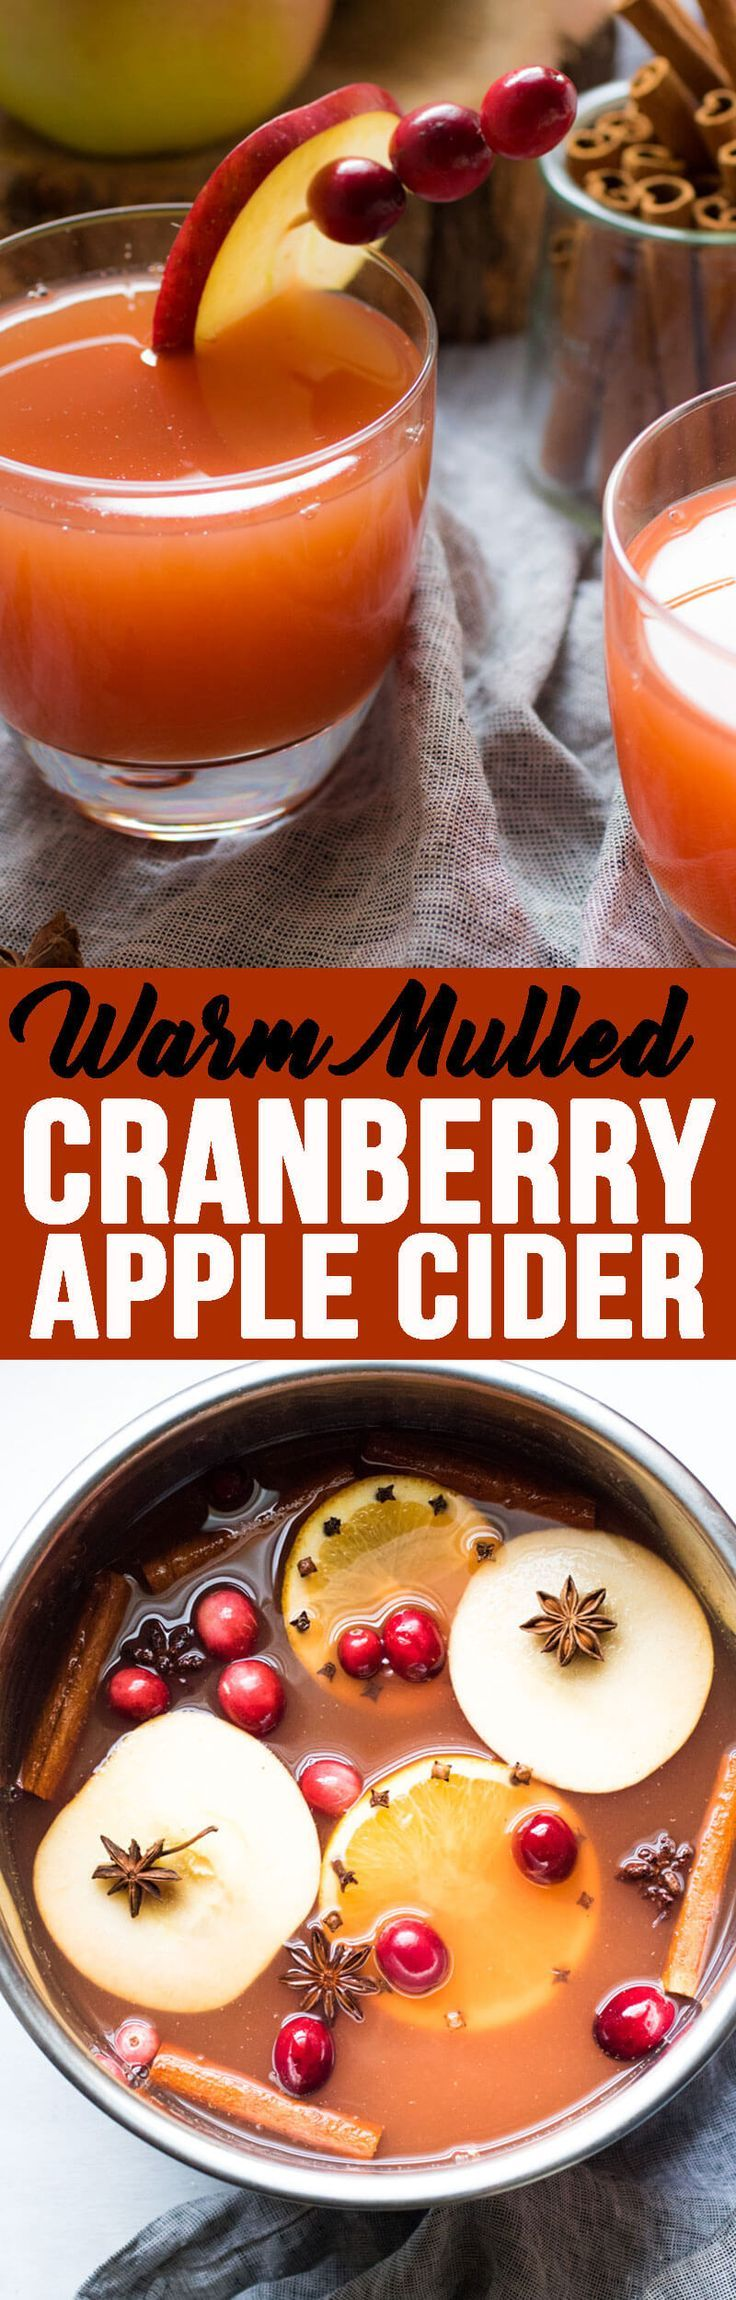 Warm Mulled Cranberry Apple Cider is perfect for curling up in front of the fire on a cold winter night! #applecider #warmmulledcranberryapplecider #cranberryapplecider #mulledapplecider #cider